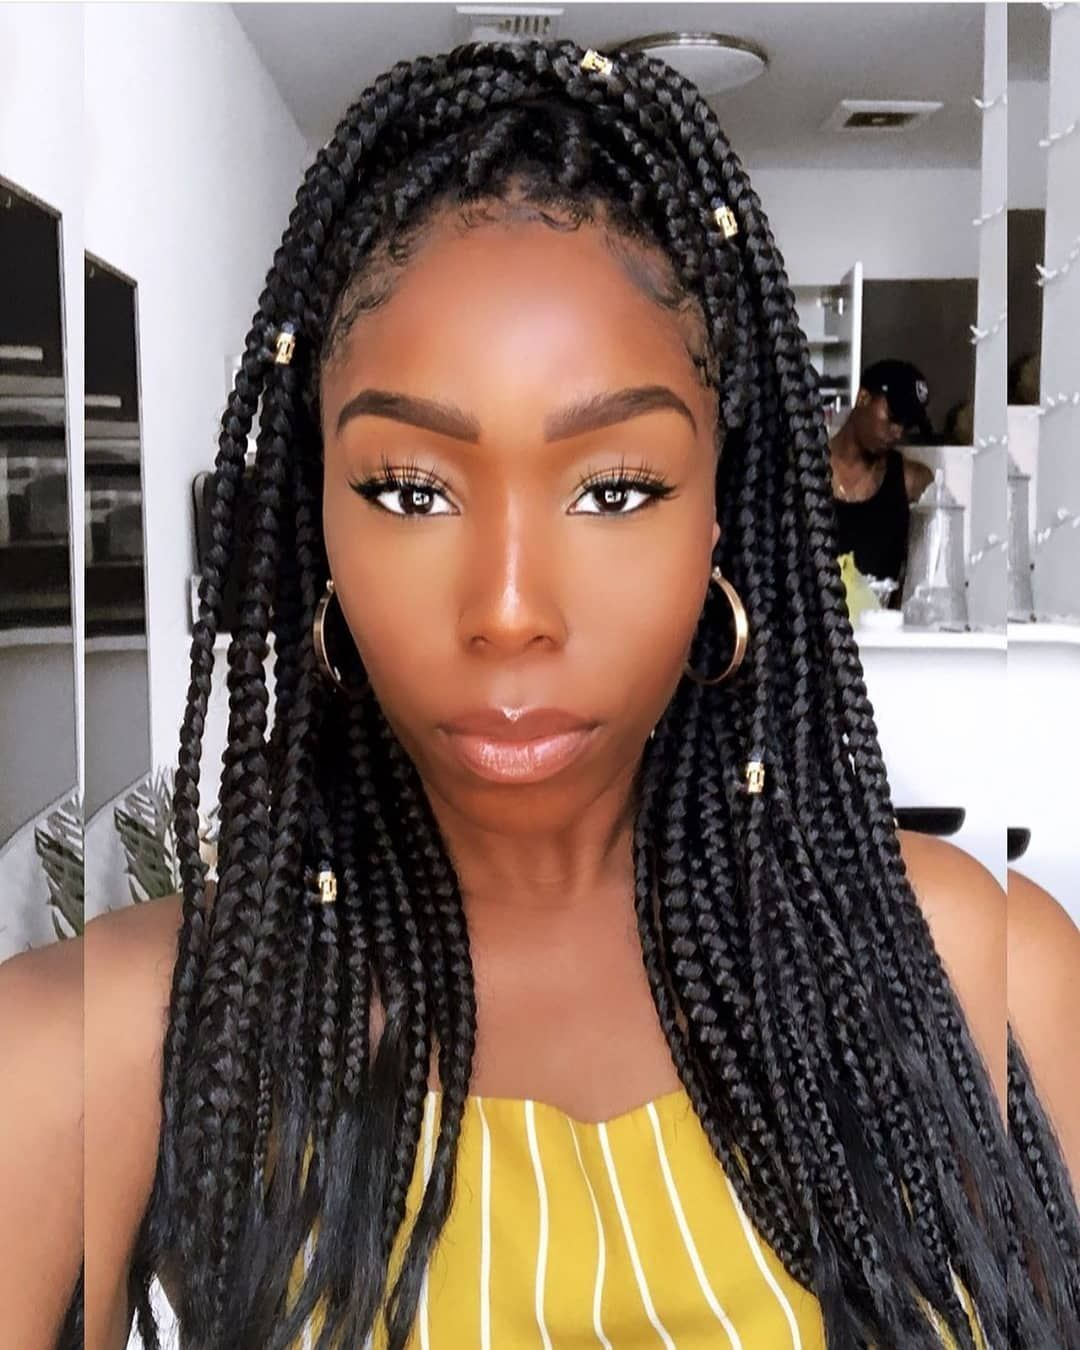 35 Crochet Box Braids Hairstyles With Images Black Women